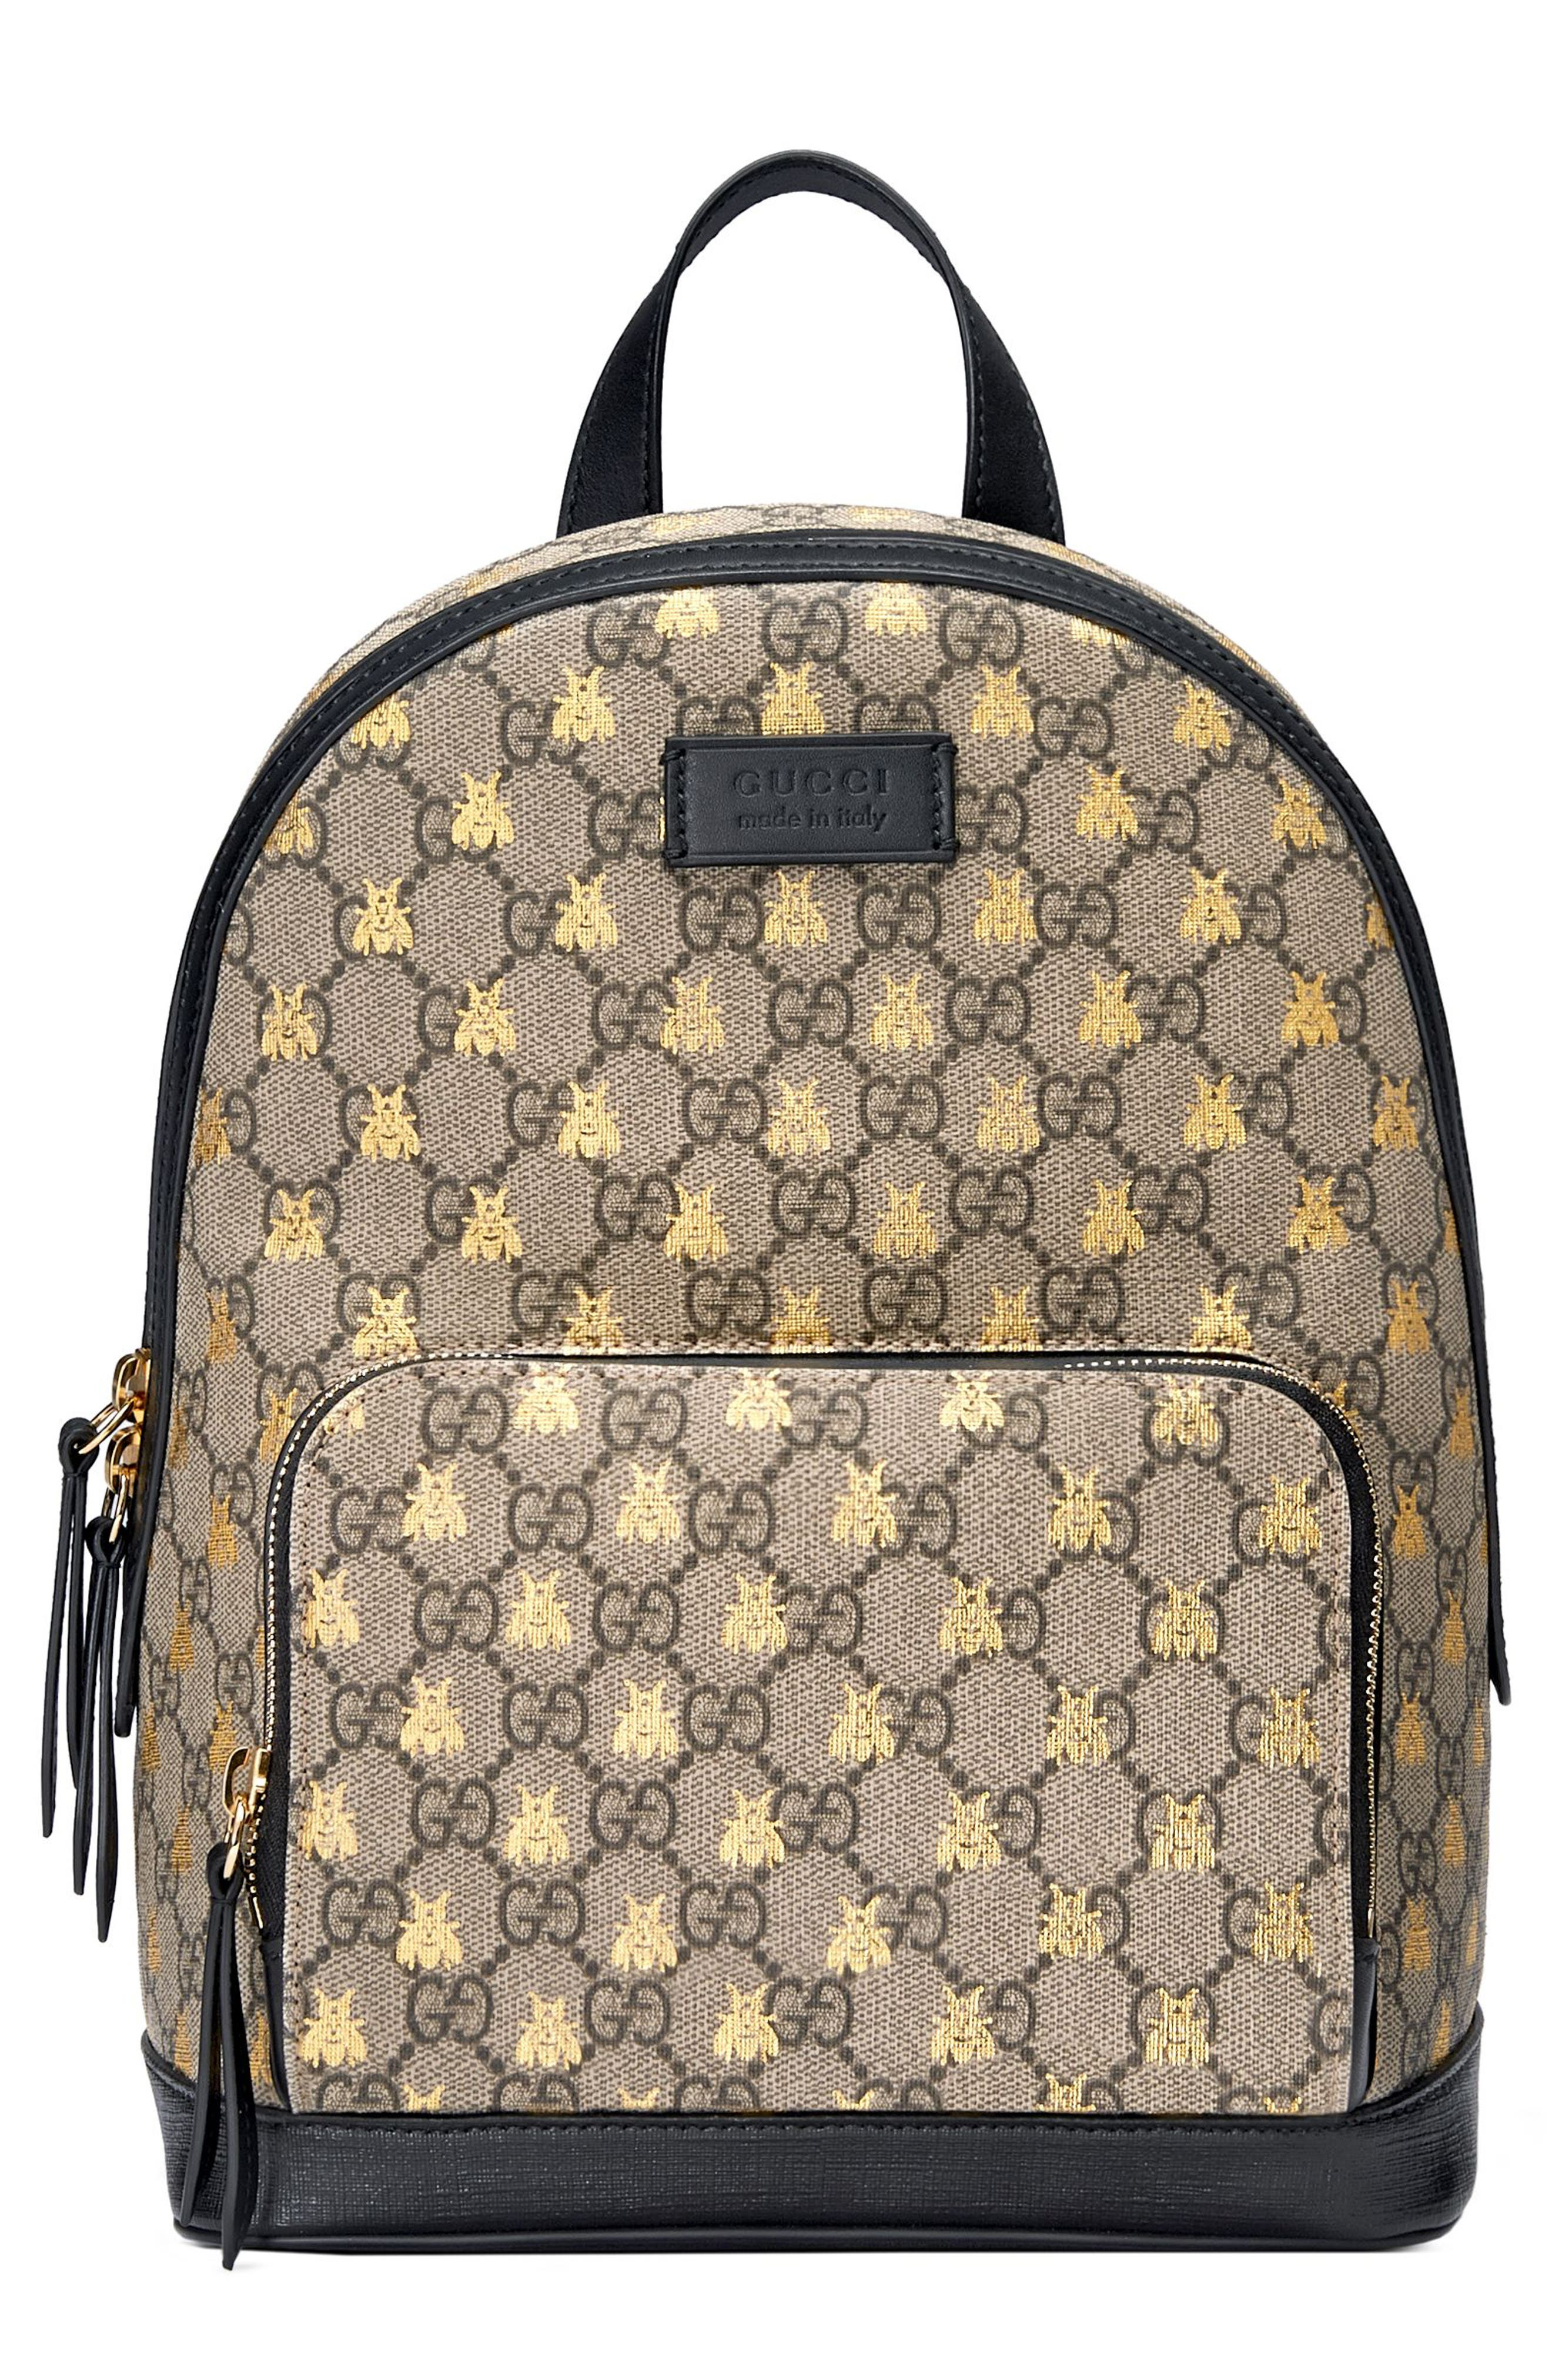 03482d68c477 Gucci Bee Gg Supreme Canvas Backpack - Beige